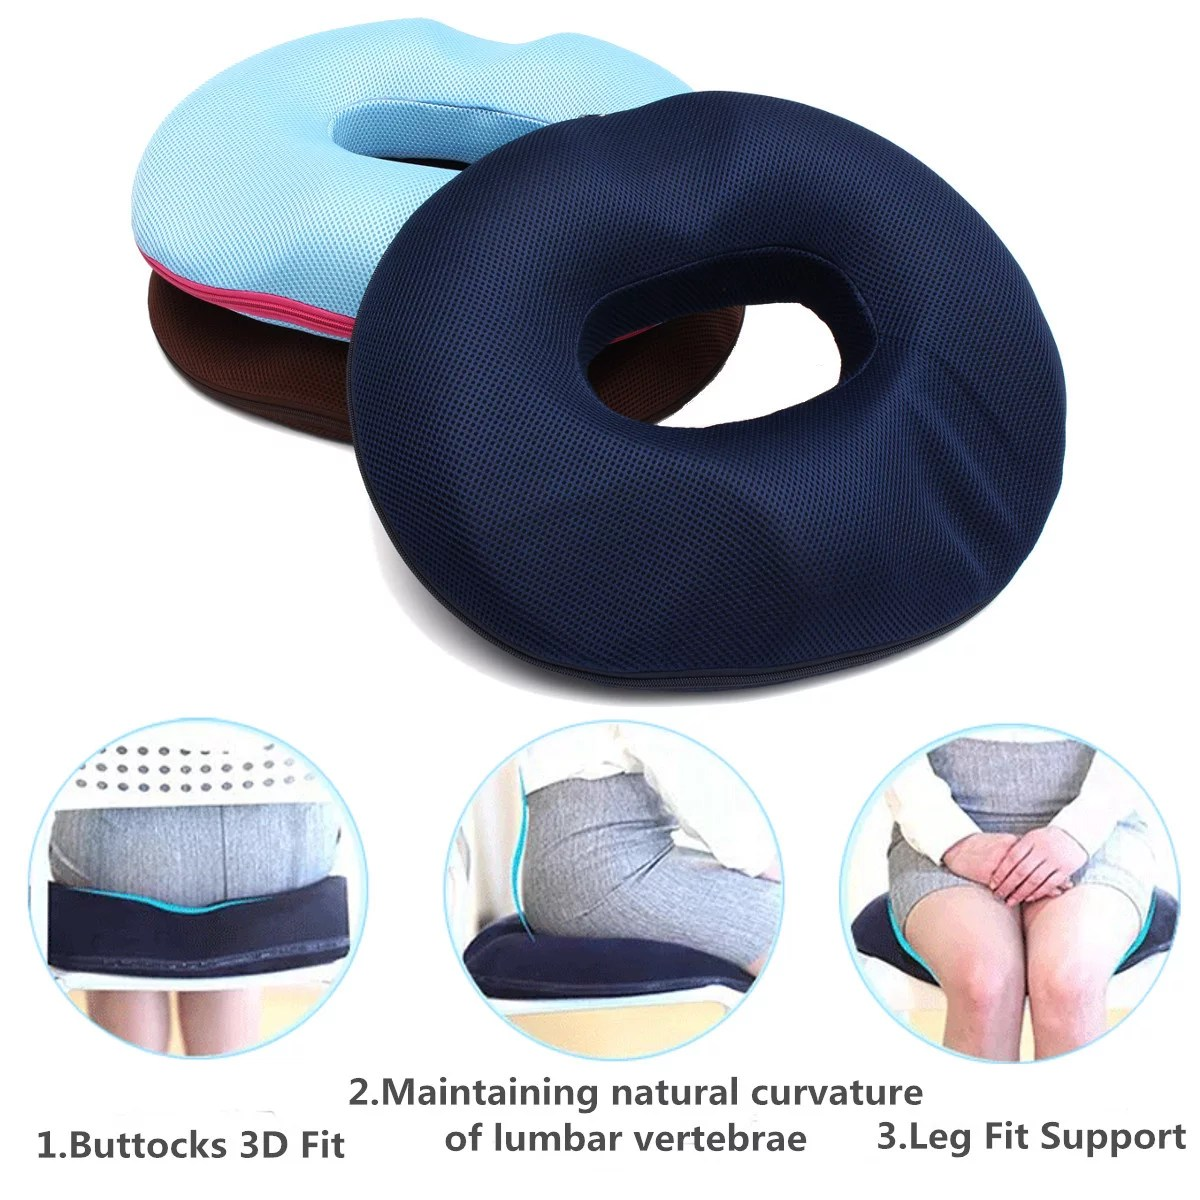 donut pillow hemorrhoid cushion for women memory foam donut seat cushion tailbone pain relief cushion for pregnancy coccyx bed sores back